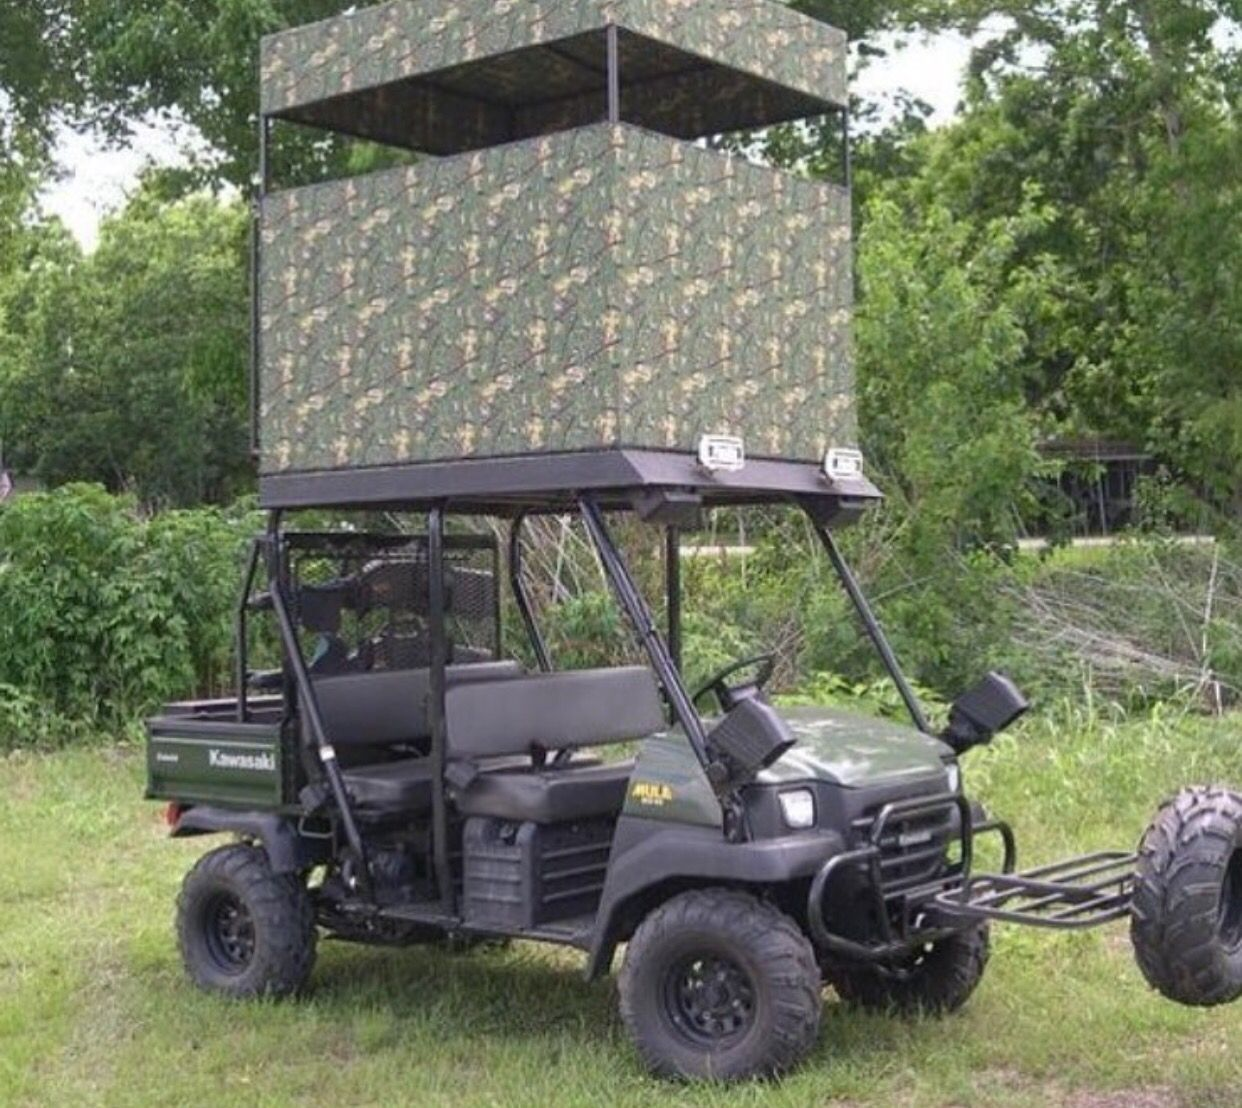 Hunting Blind On Top Of A Atv Atvs Pinterest And 2004 Polaris Sportsman 700 Fuel Filter Ranger 900 Utv Accessories Hog